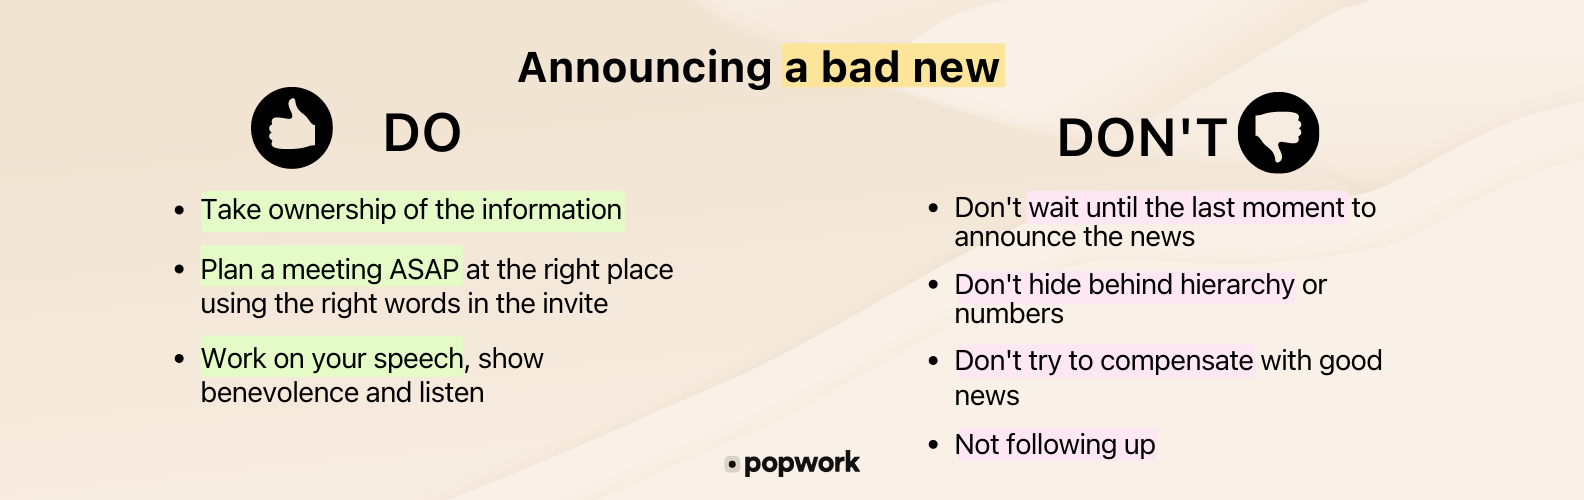 Synthesis of what to do and not to do while announcing a bad new - Popwork